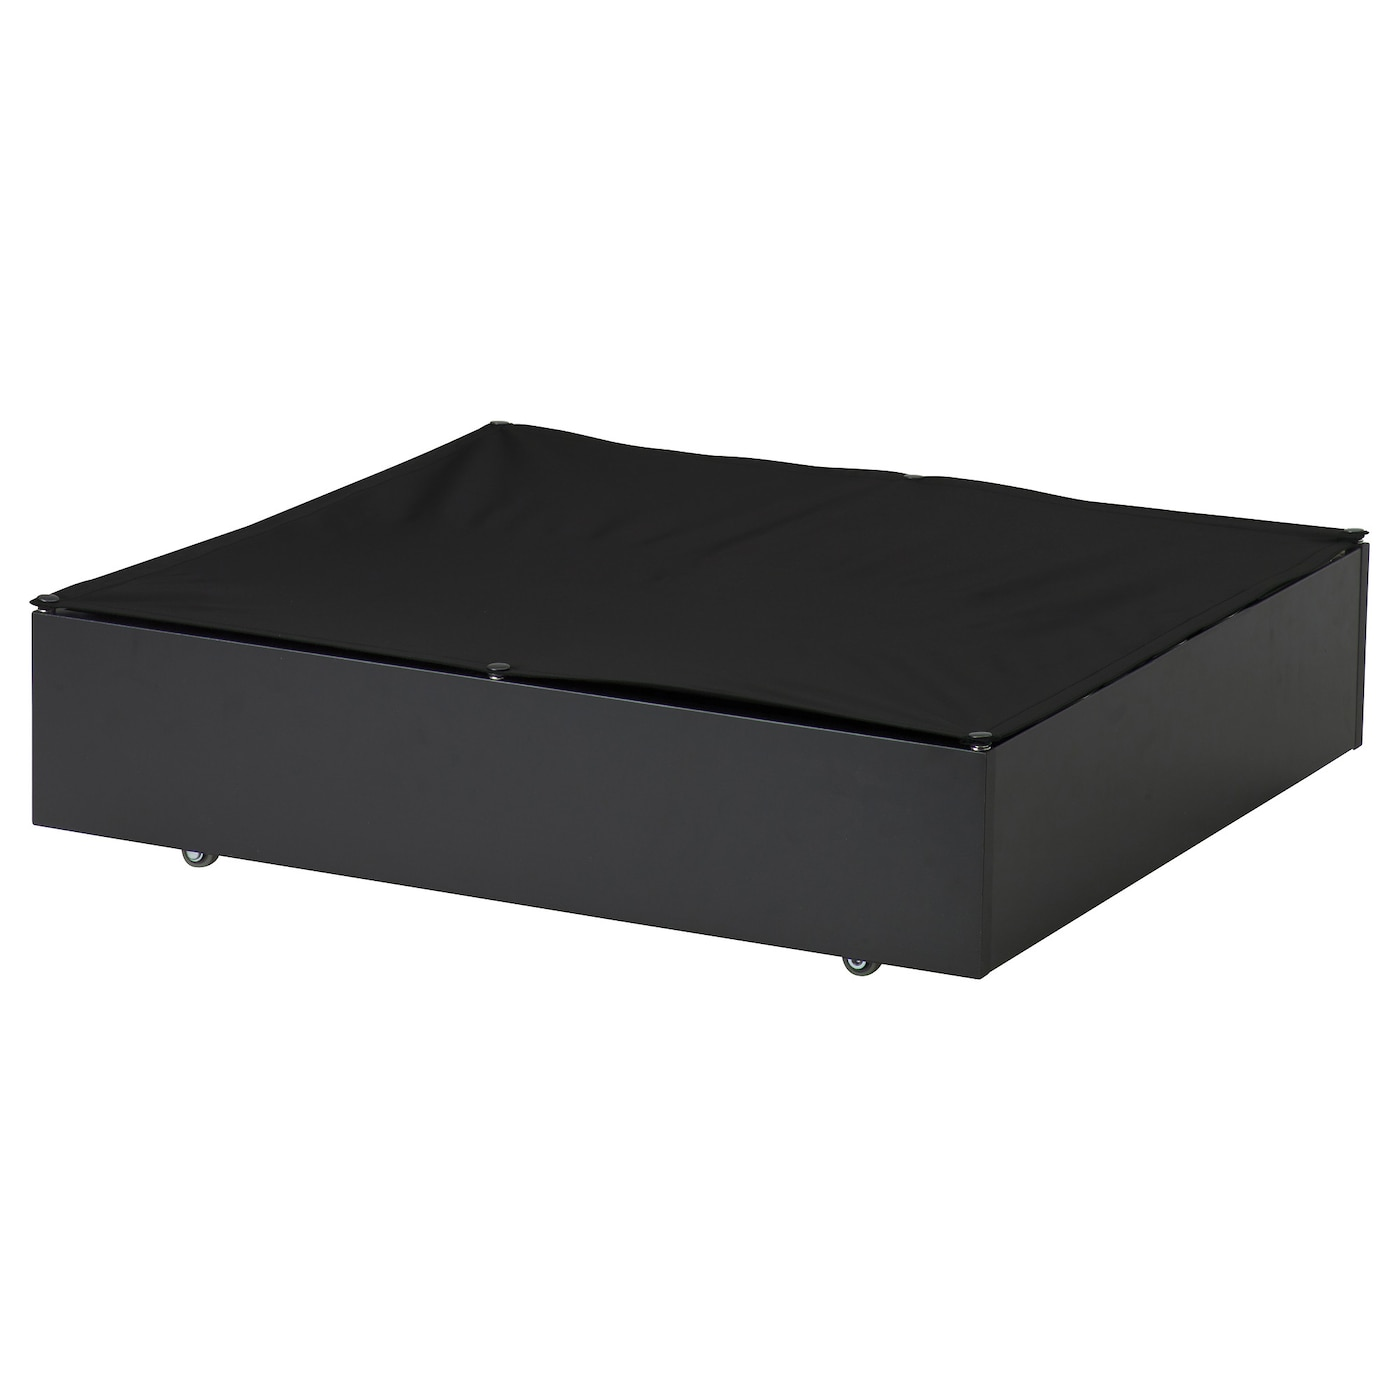 vard bed storage box black 65x70 cm ikea. Black Bedroom Furniture Sets. Home Design Ideas